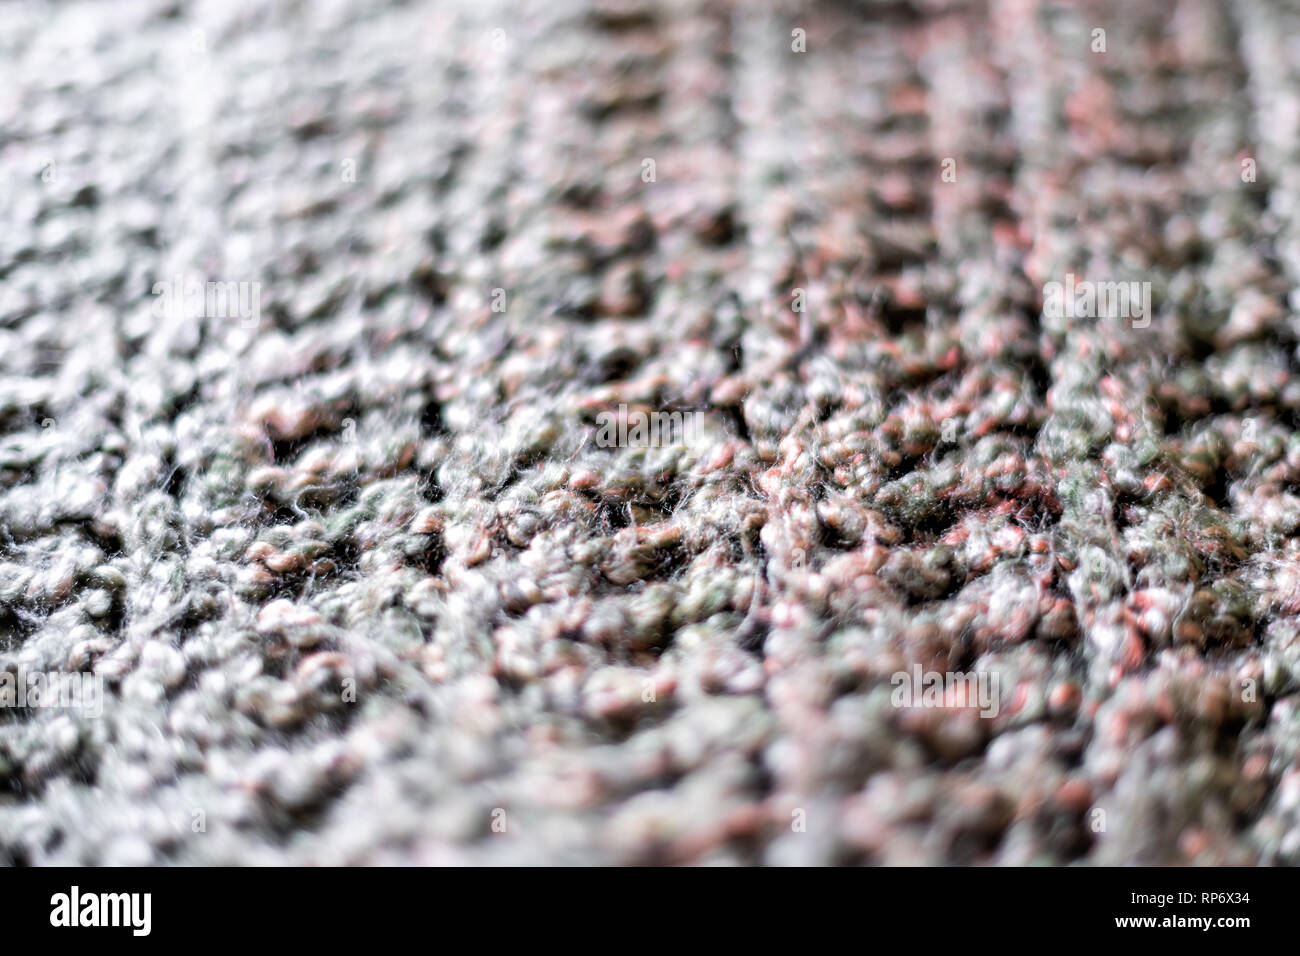 f8dc59e62b467a Macro abstract closeup texture of yarn knitted sweater or scarf handmade  with pink and grey colors